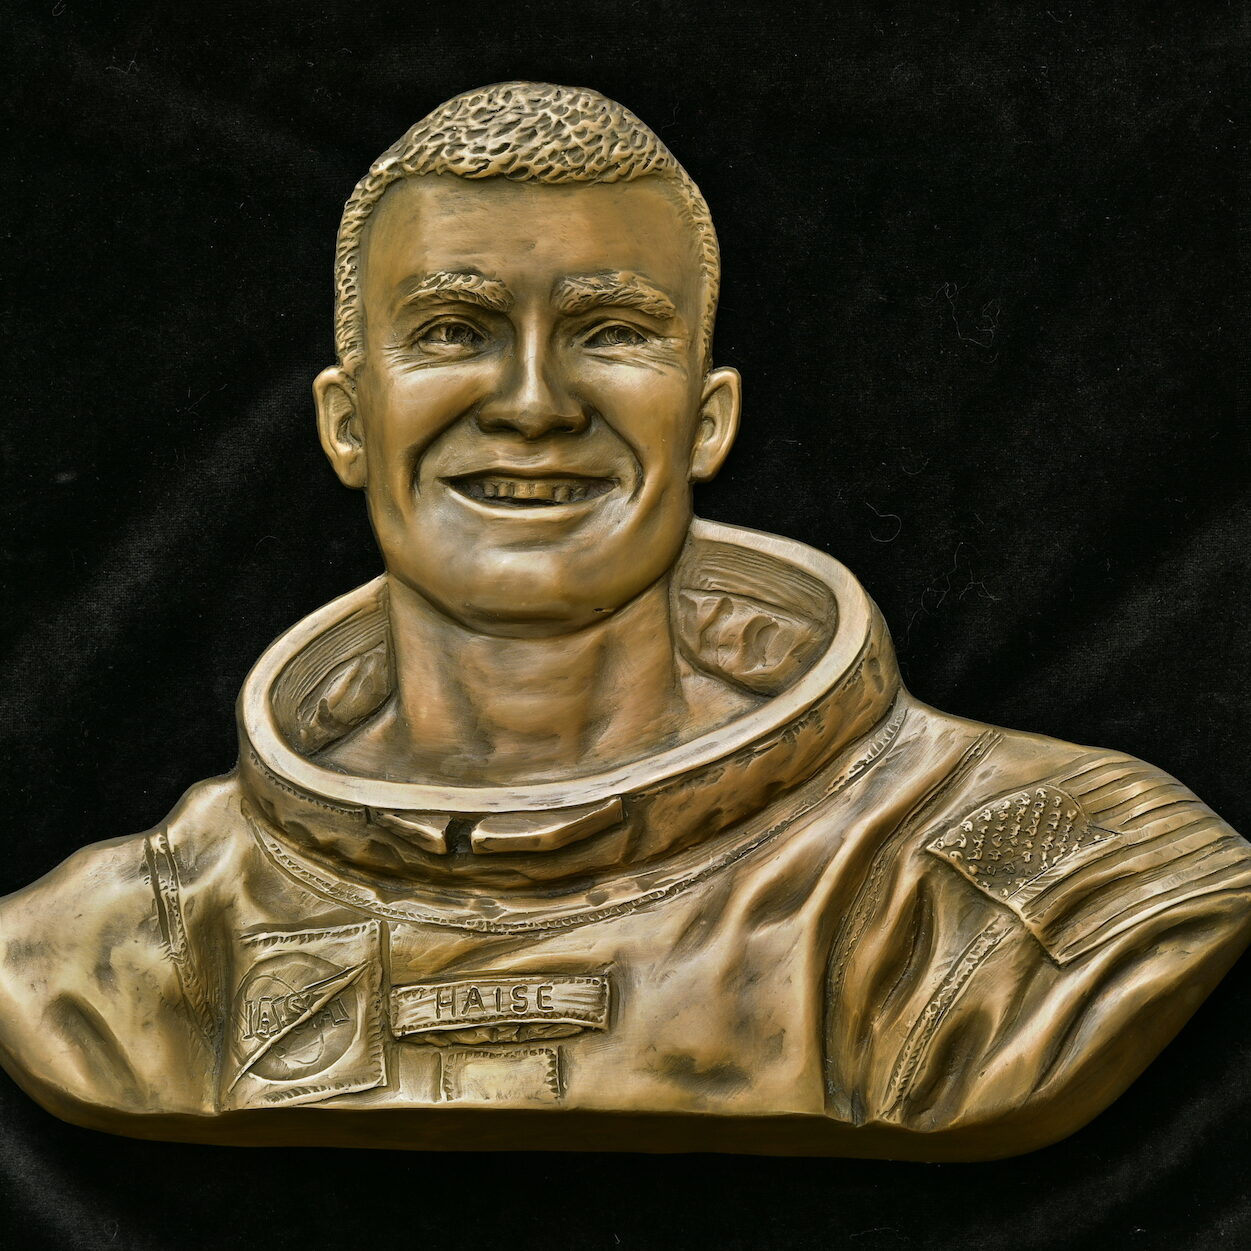 Sutton Betti, NASA portrait relief, Fred Haise relief, clay for bronze, Sutton Betti sculpture, Stennis Space Center, Mississippi